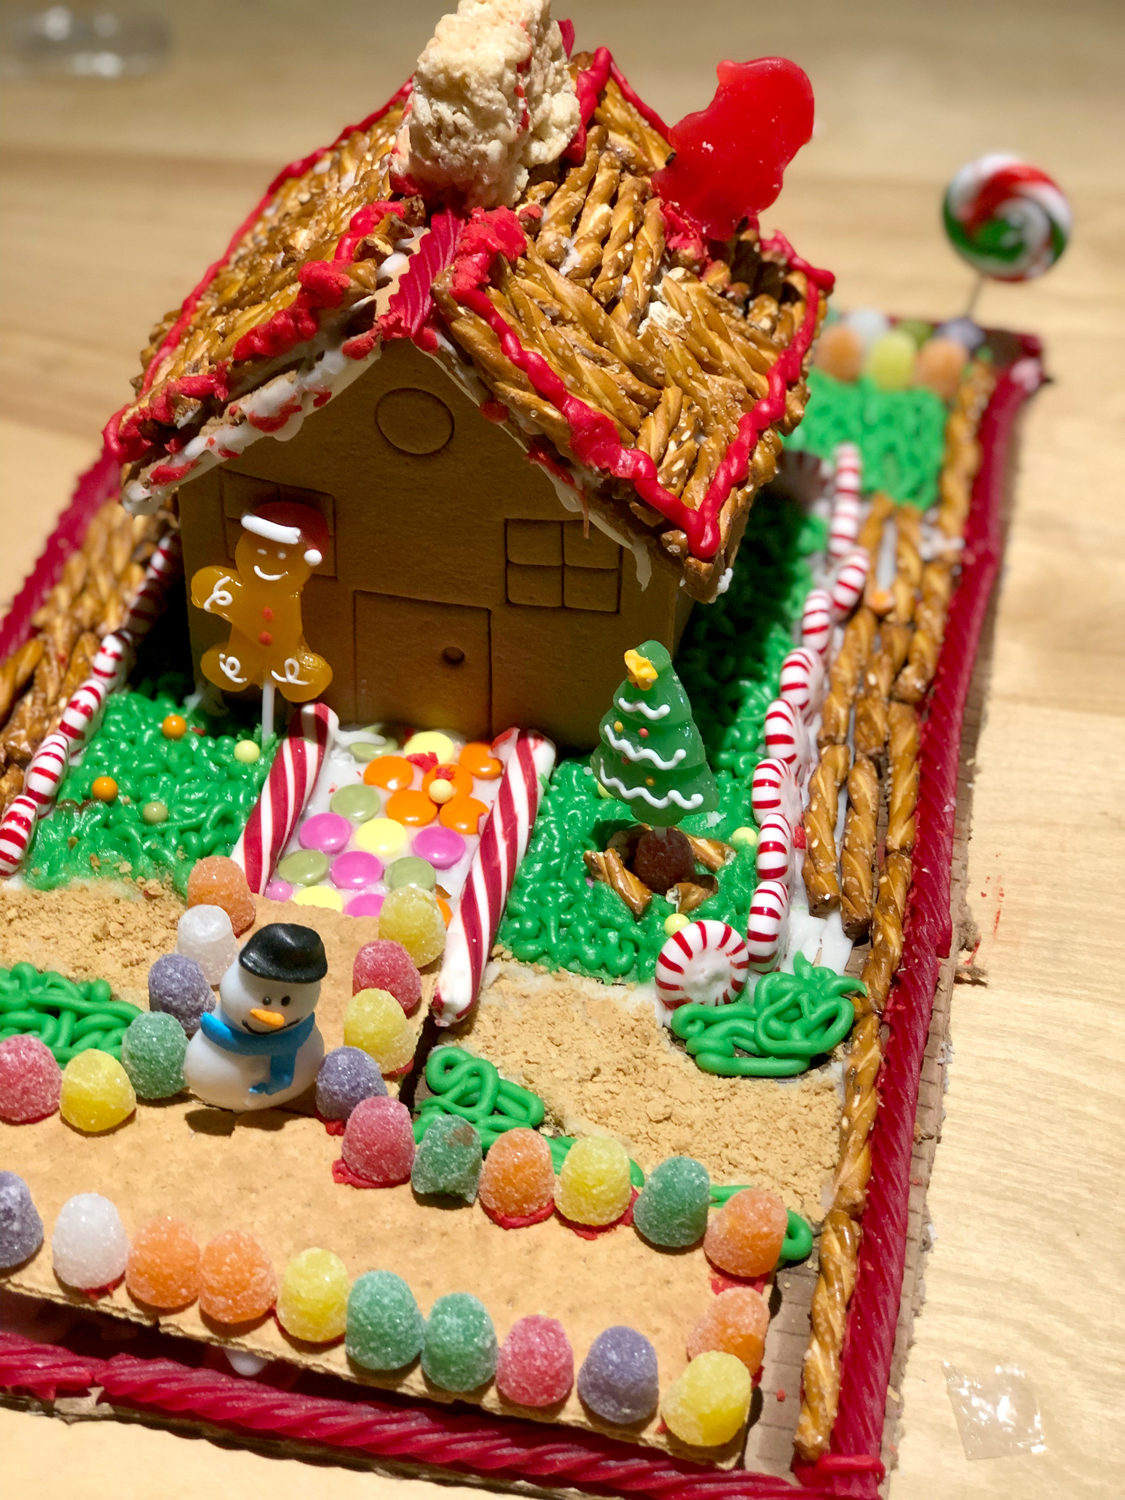 Gingerbread-3-opt.jpg